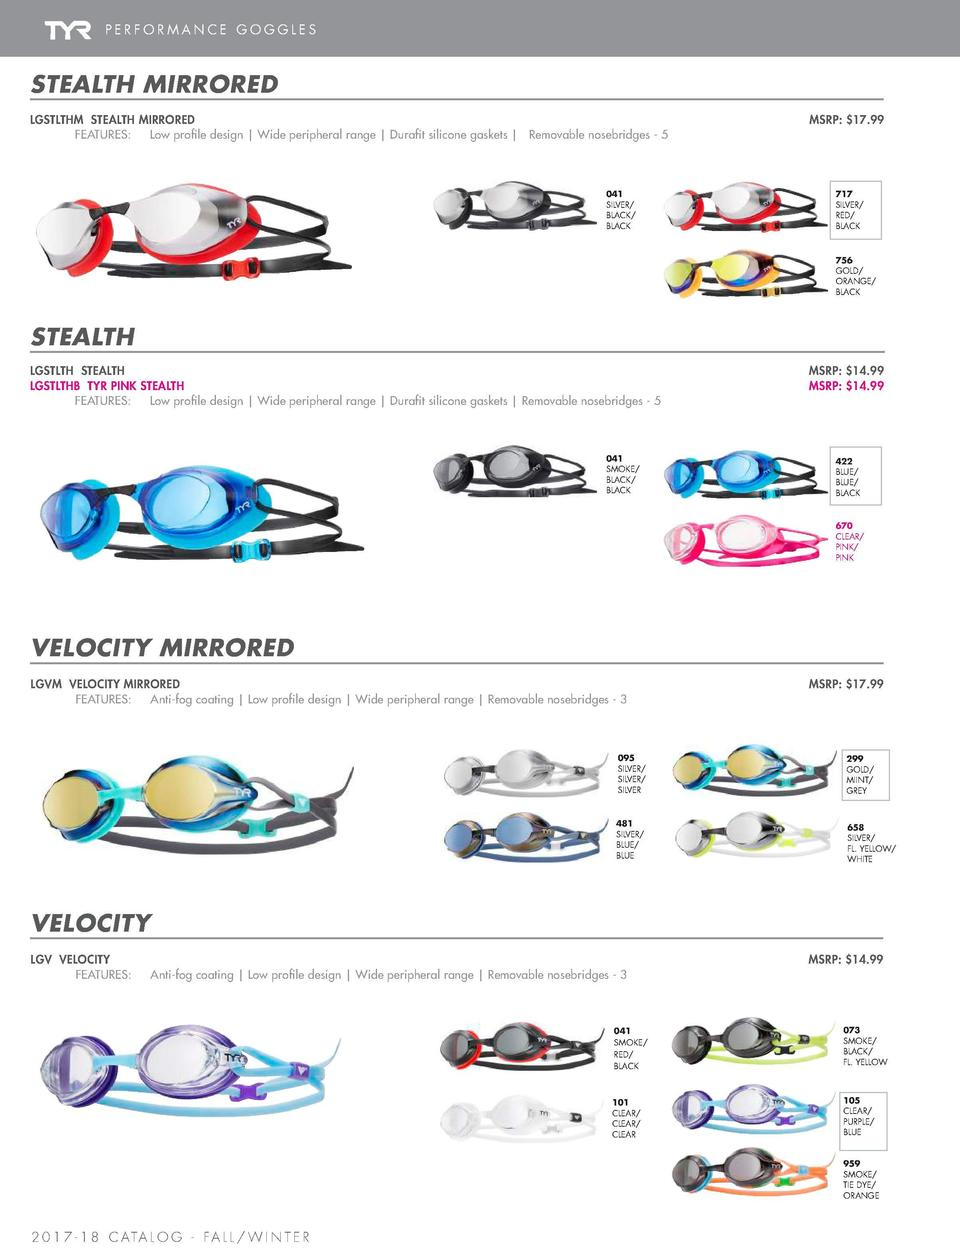 PERFORMANCE GOGGLES  STEALTH RACING   VELOCITY   SOCKET ROCKETS   2.0  STEALTH MIRRORED  SOCKET ROCKETS    2.0 MIRRORED  L...